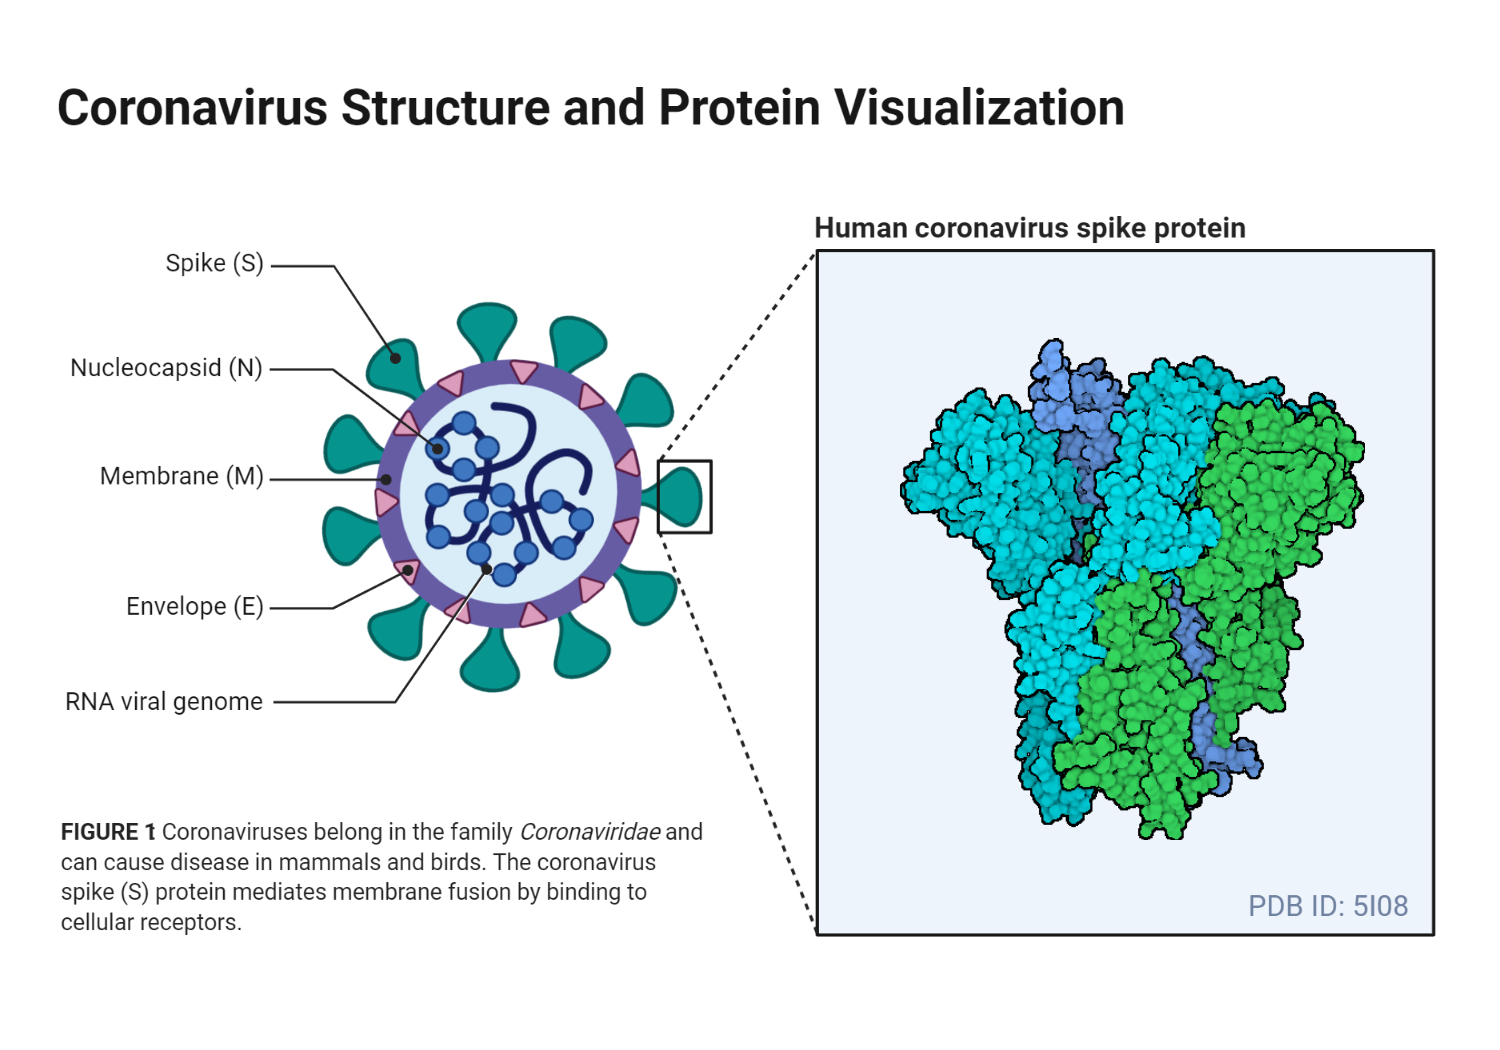 Coronavirus Structure and Protein Visualization